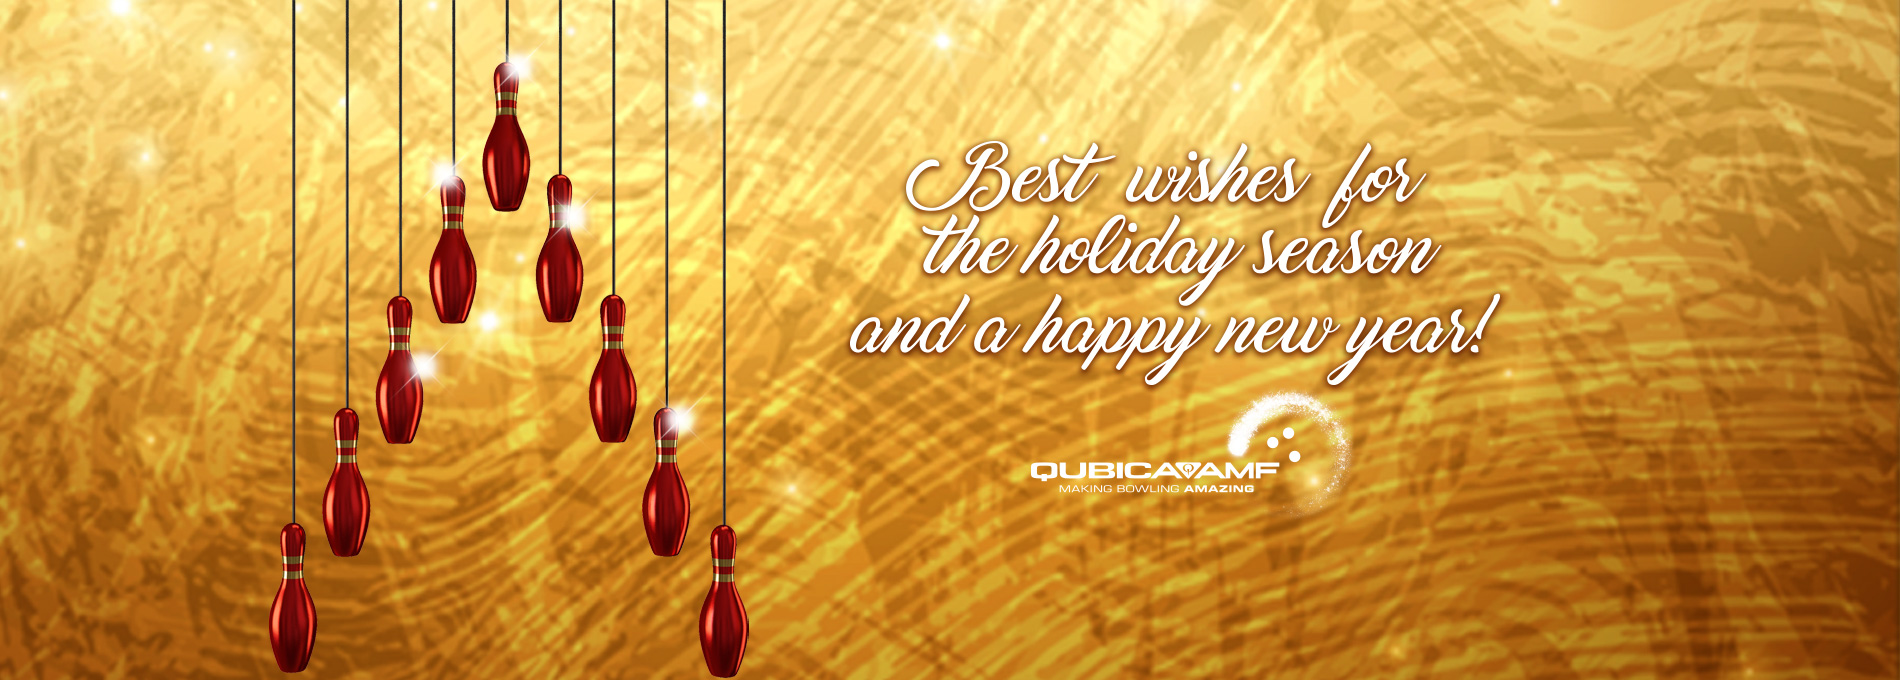 QubicaAMF Bowling happy holidays 2019 home banner